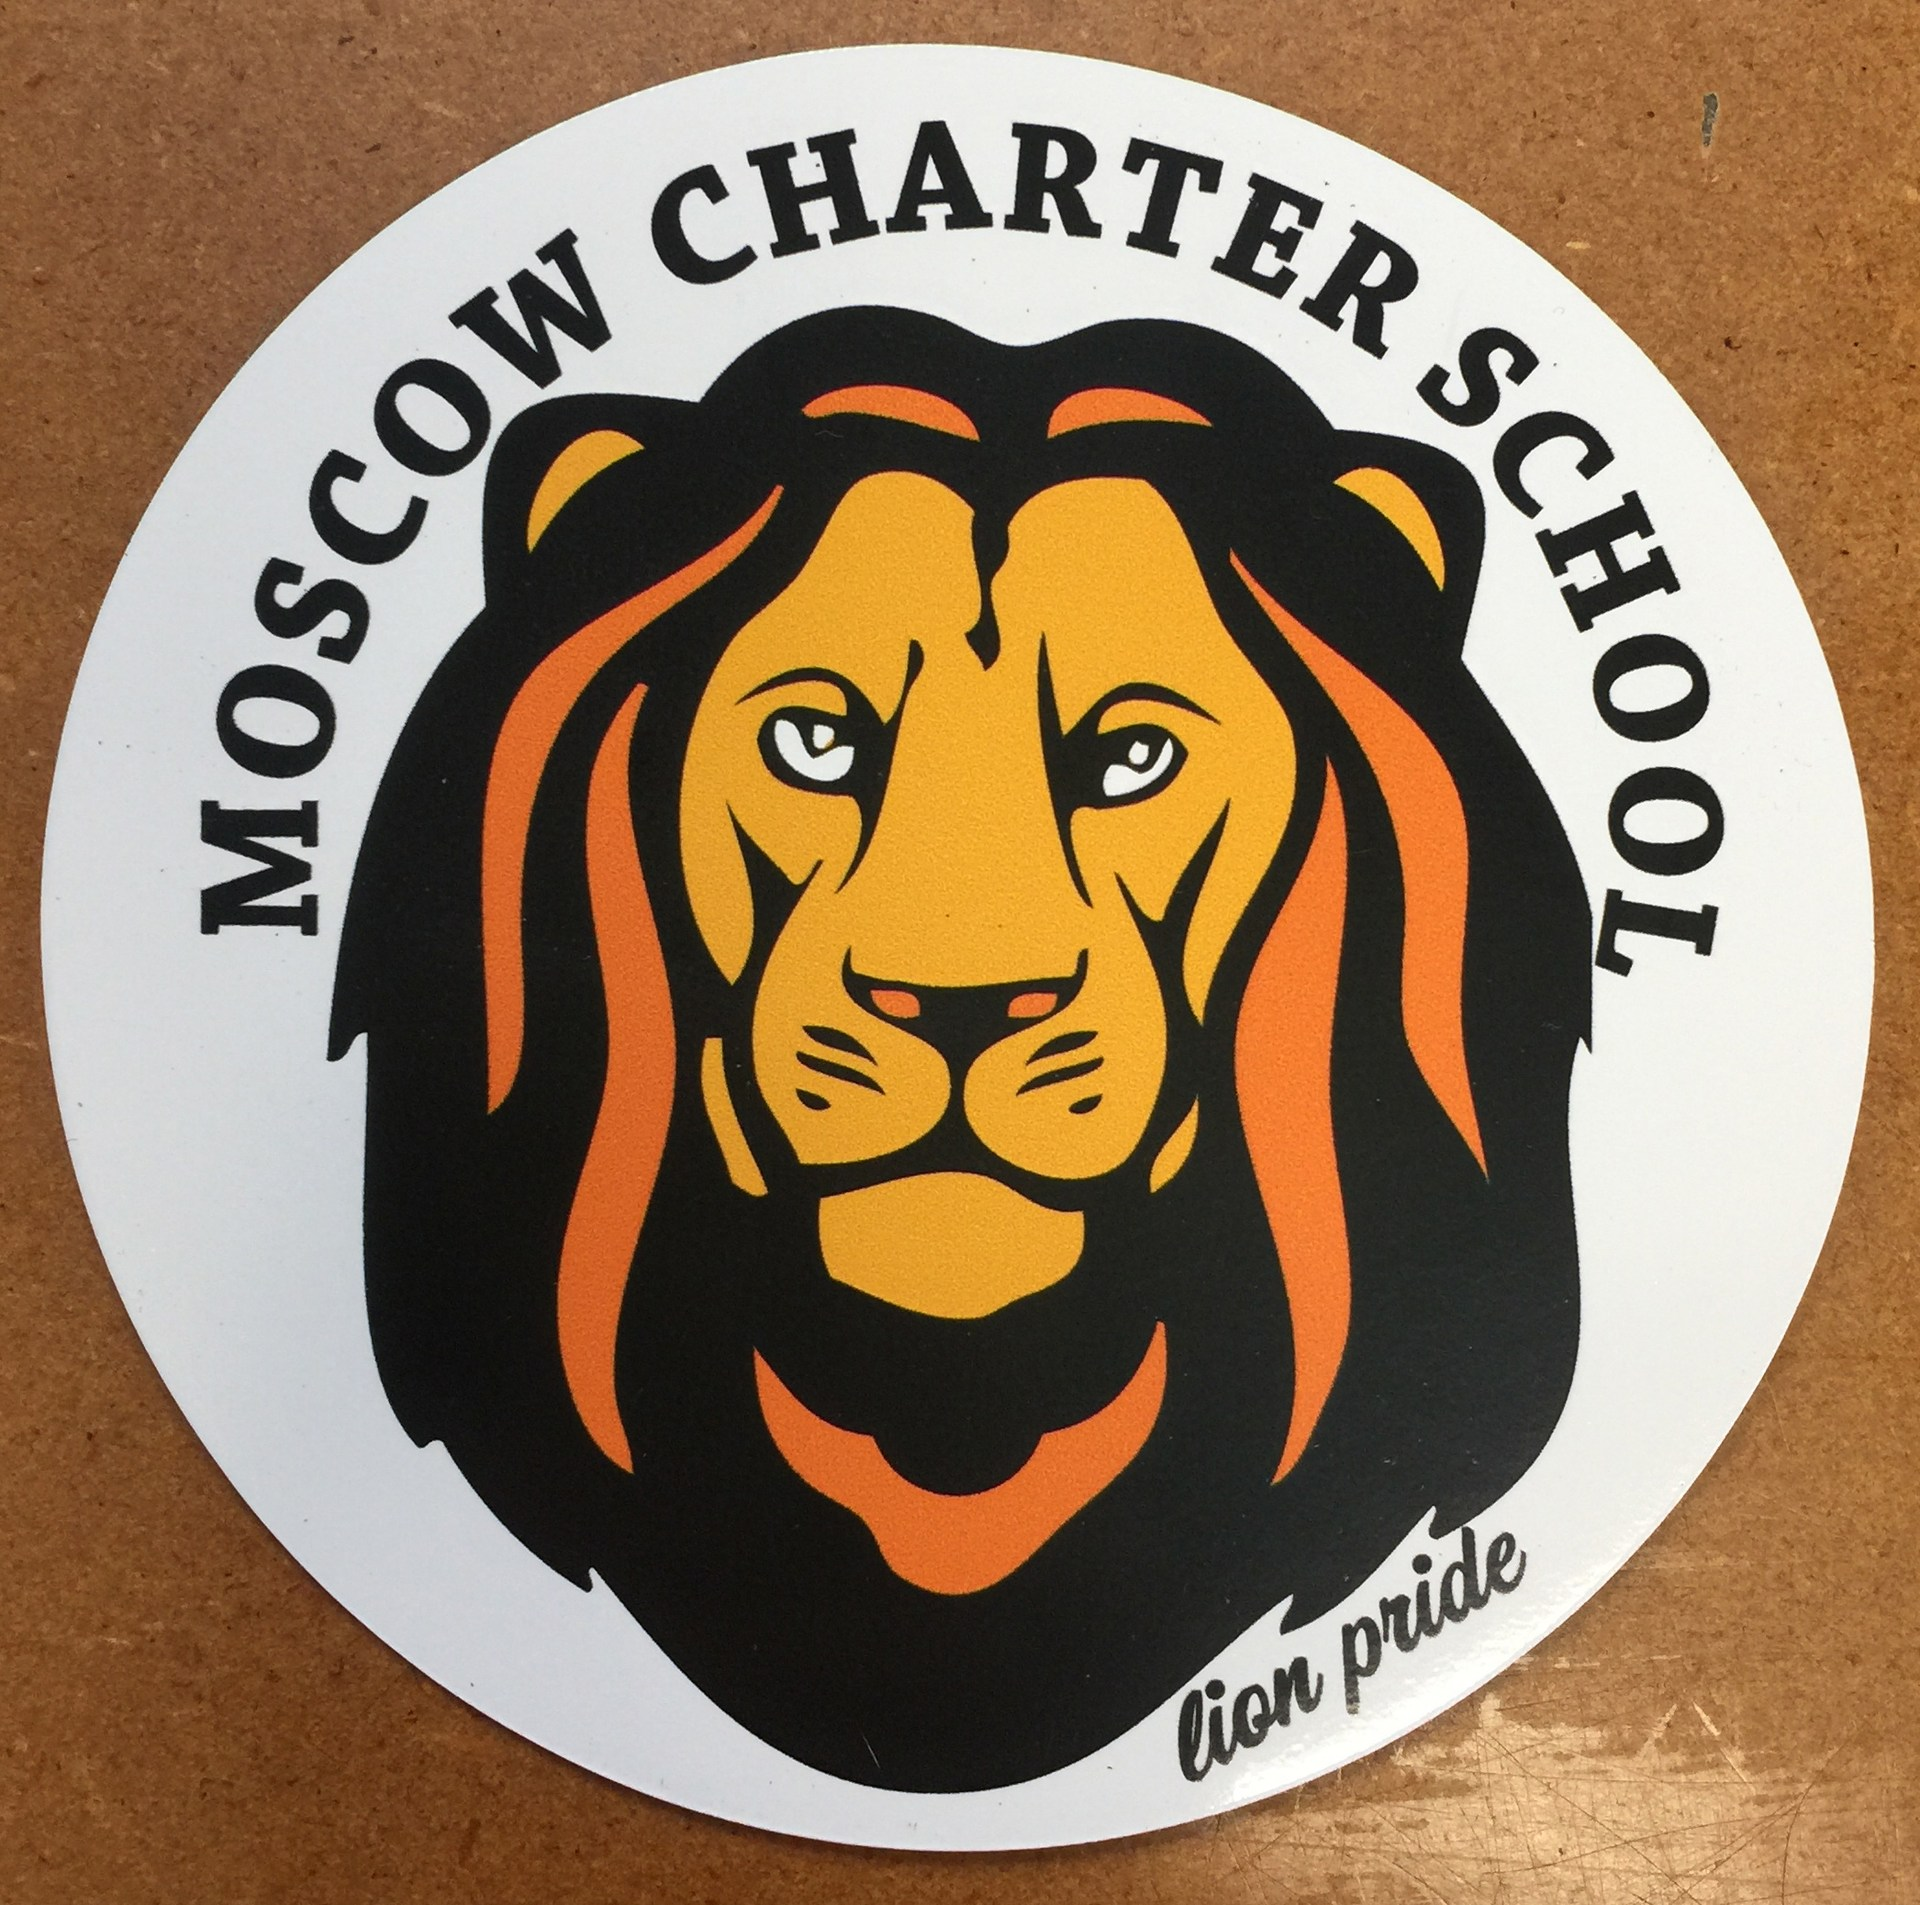 Moscow Charter School Lion Pride Magnet-School Donor